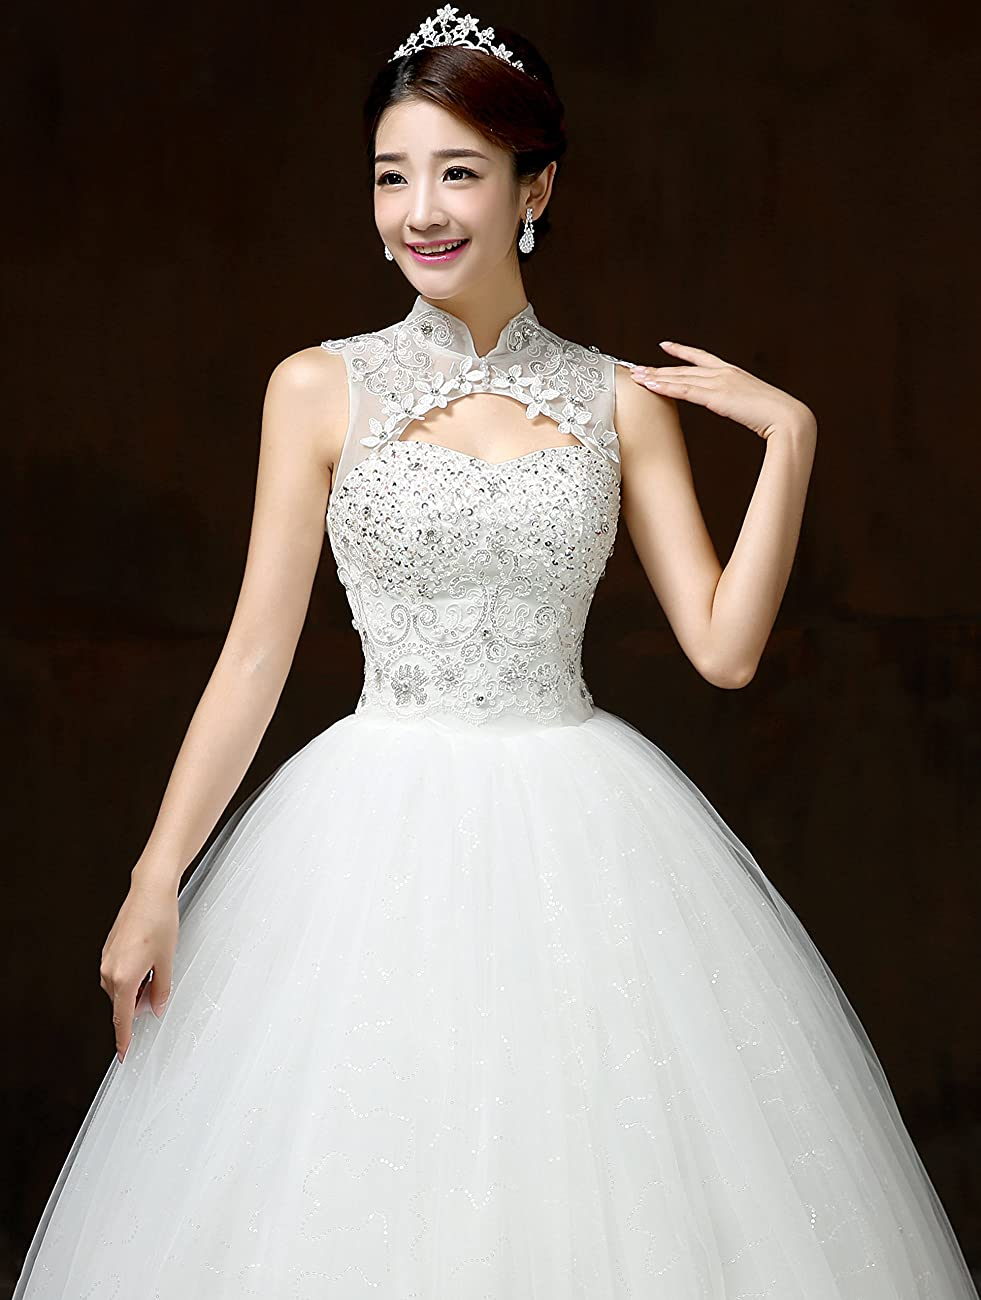 Clover Bridal Vintage High Collar Pearl Wedding Dress for Bride White Under 100 4